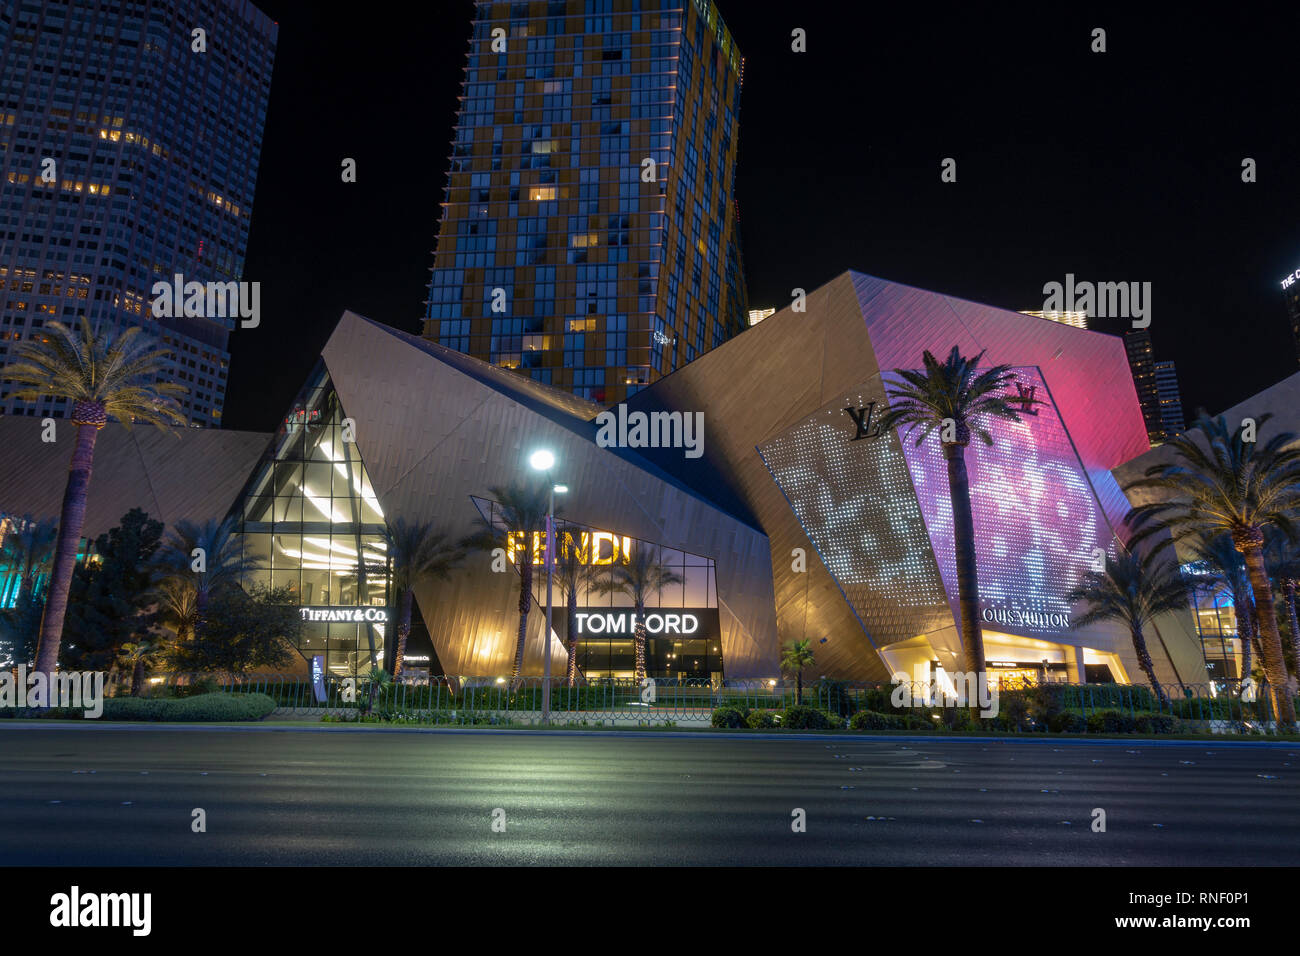 Cool The Tom Ford Las Vegas Designer Boutique Store At Night The Download Free Architecture Designs Scobabritishbridgeorg